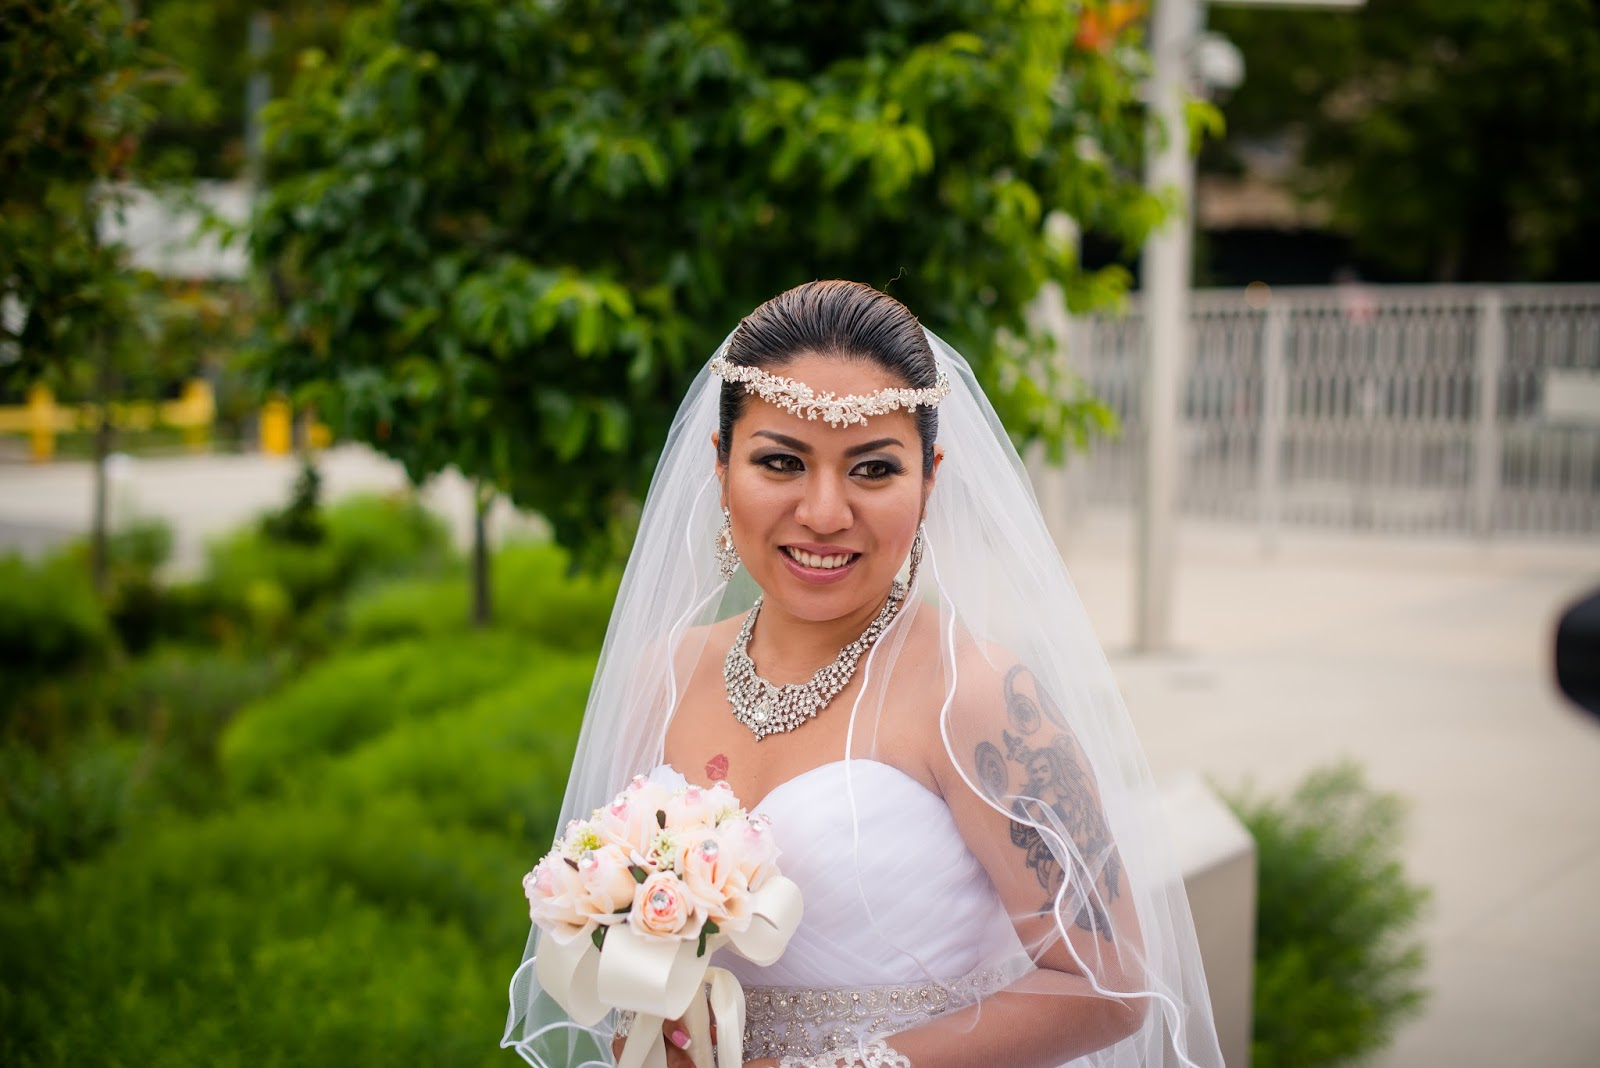 Beautiful Bride So Happy On Her Big Day.